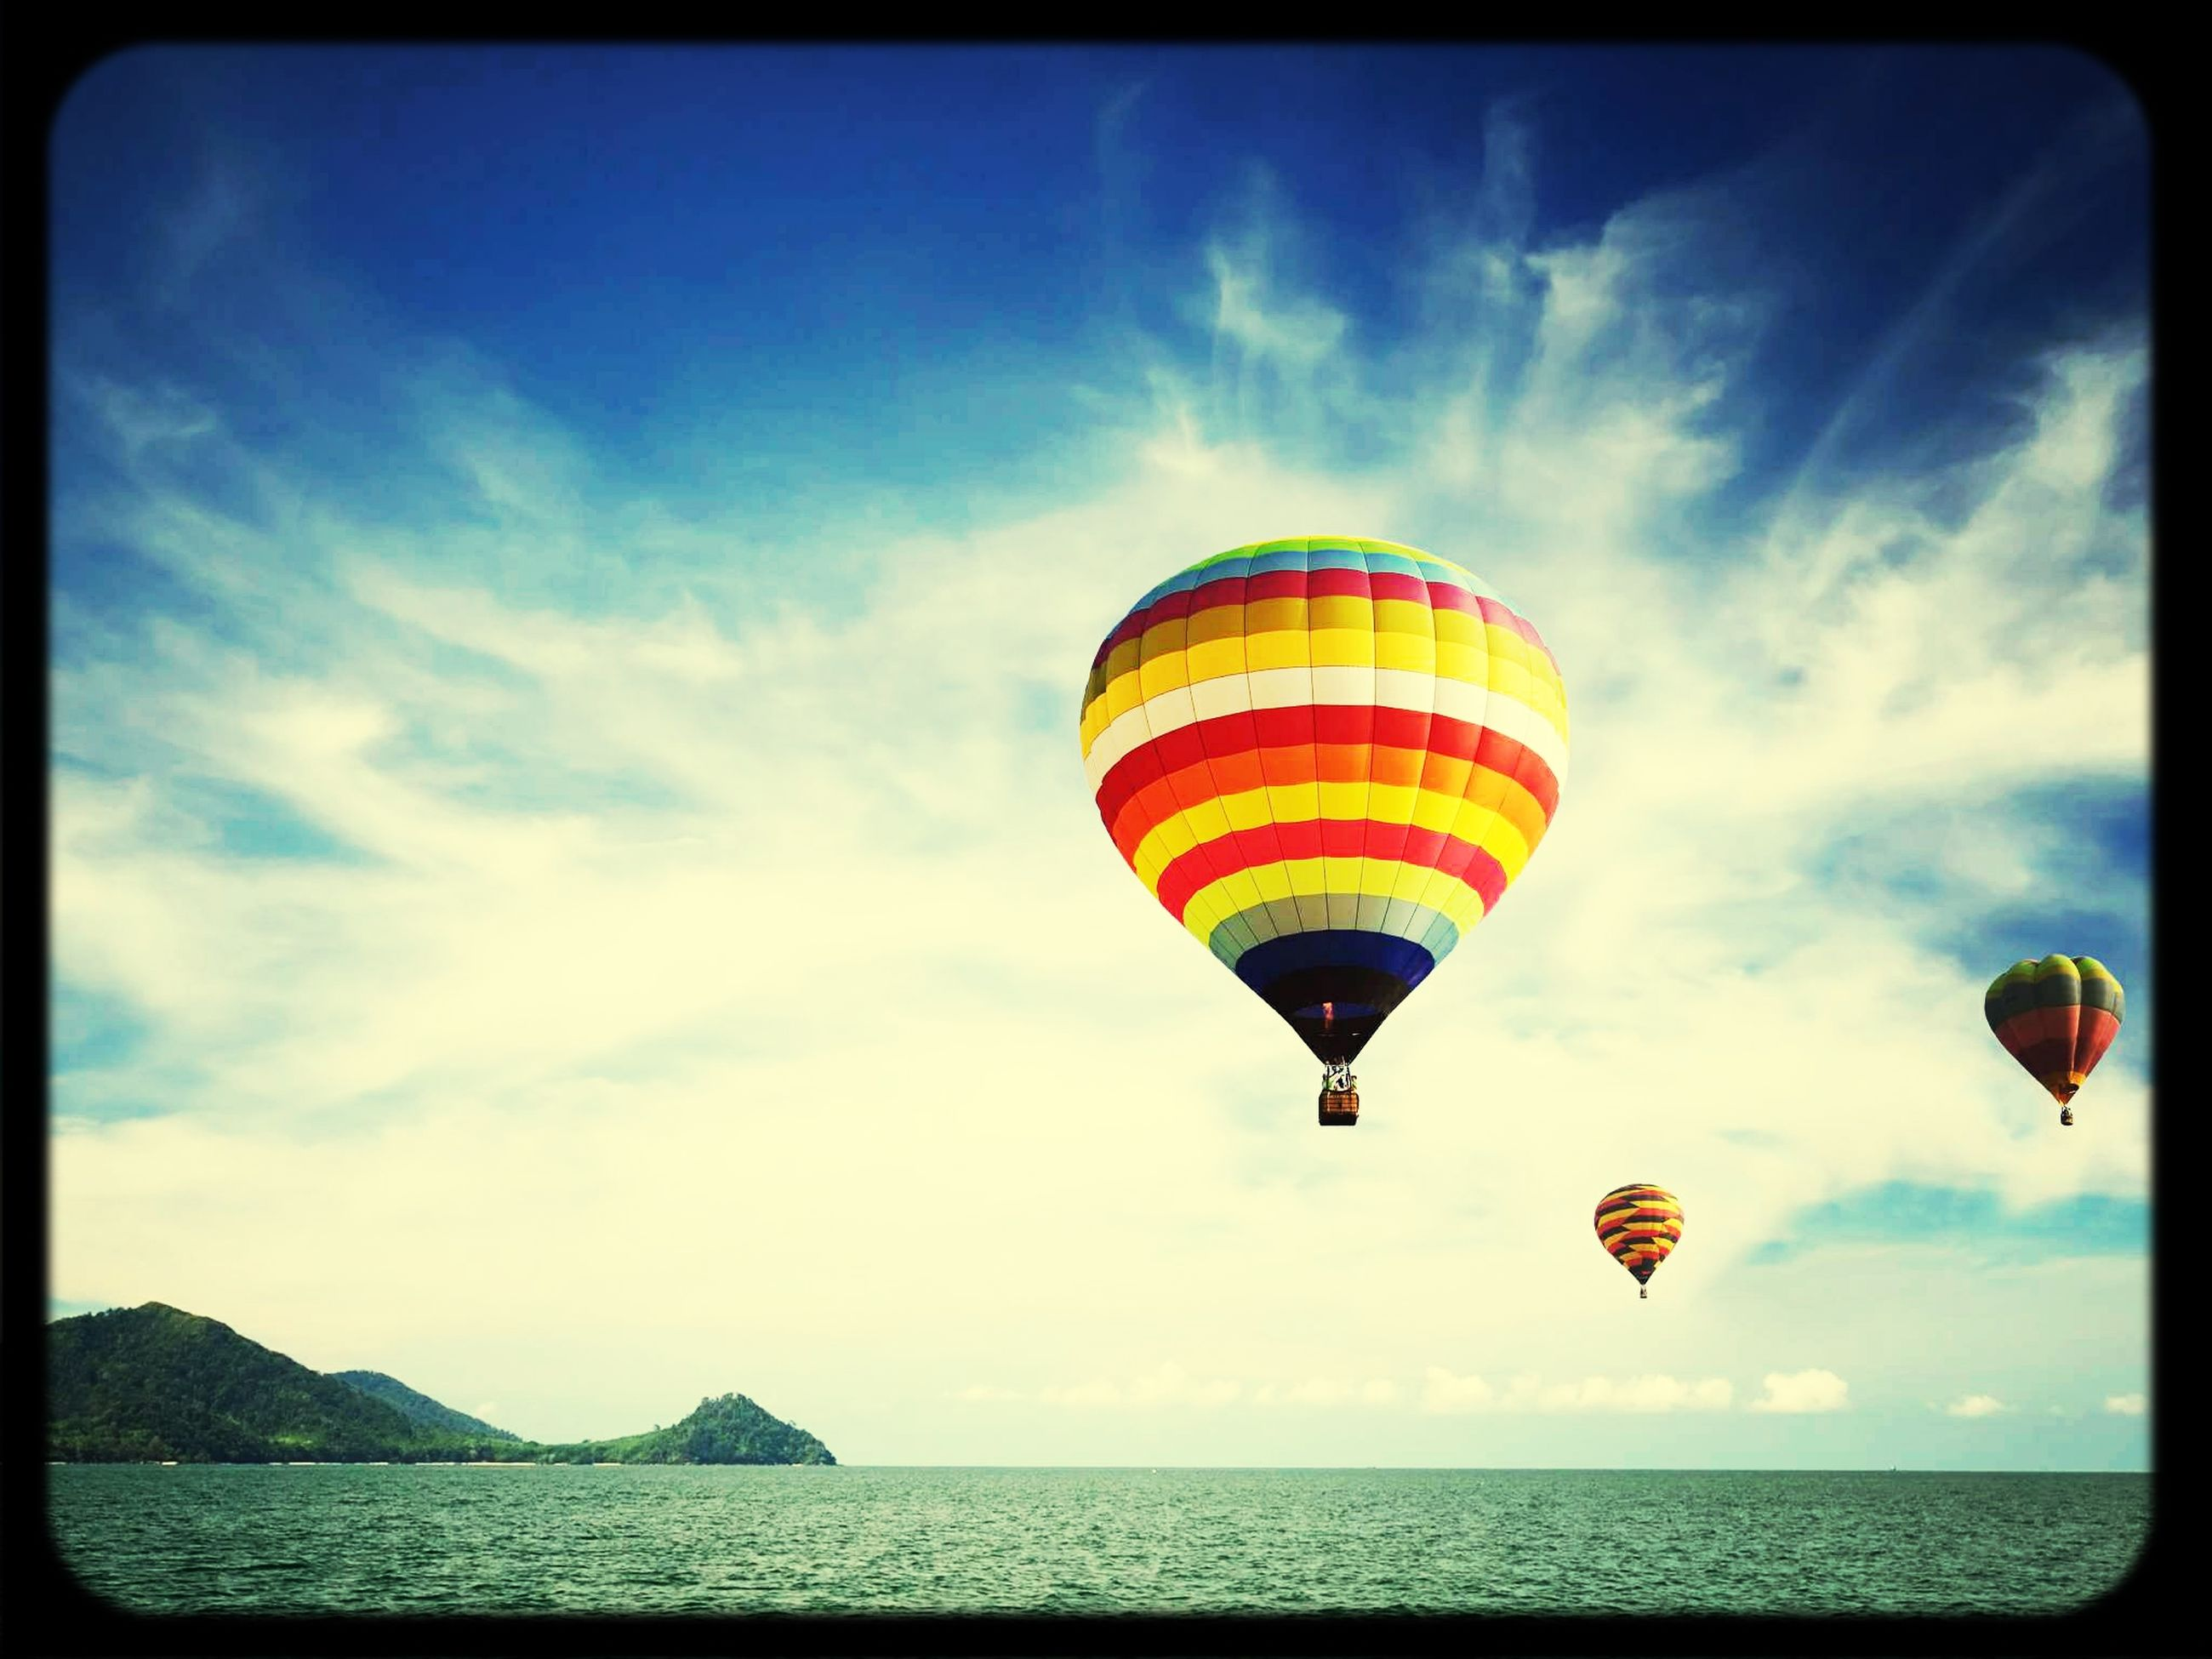 sea, sky, horizon over water, water, beach, parachute, cloud - sky, blue, transfer print, tranquil scene, scenics, tranquility, cloud, flying, multi colored, beauty in nature, leisure activity, vacations, nature, mid-air